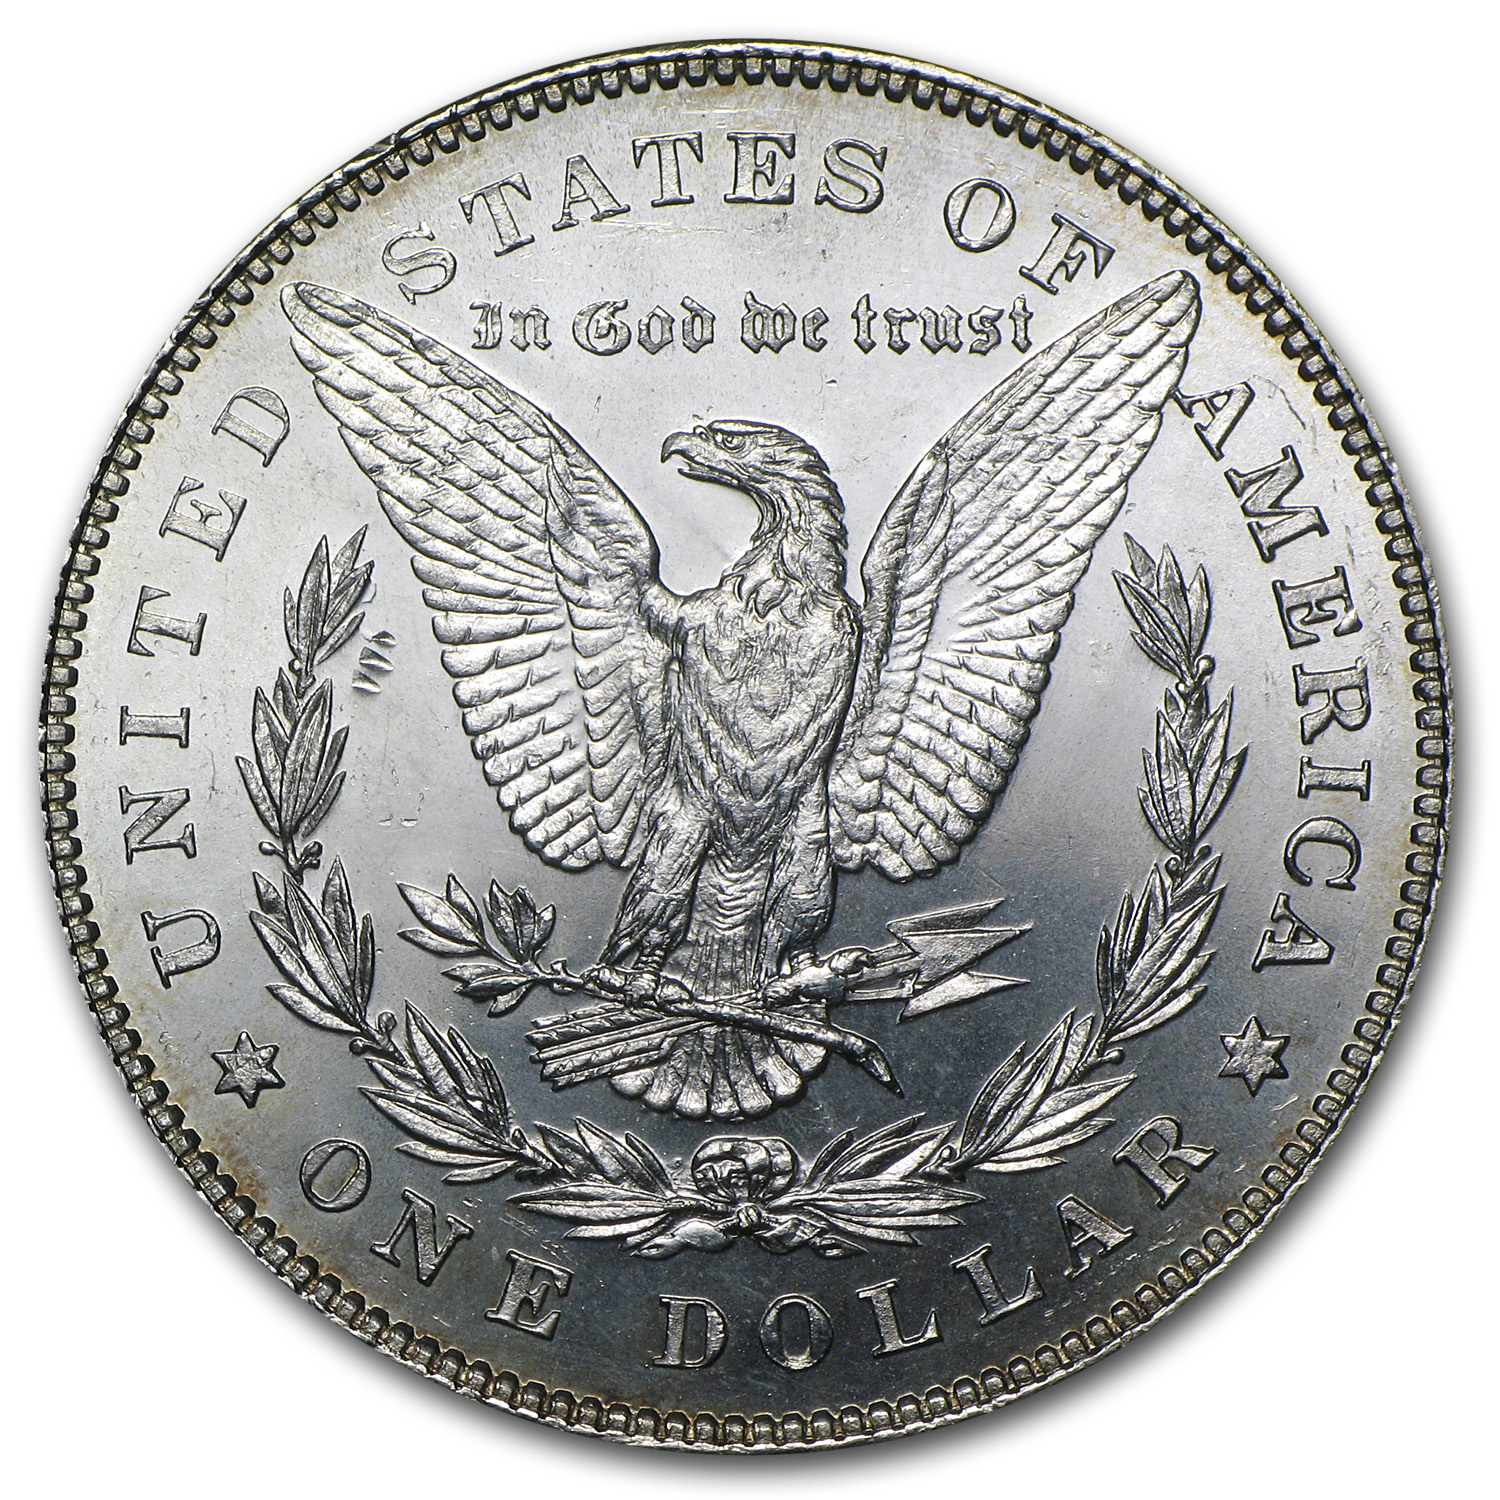 1878 Morgan Dollar - 7/8 Tailfeathers - Brilliant Uncirculated